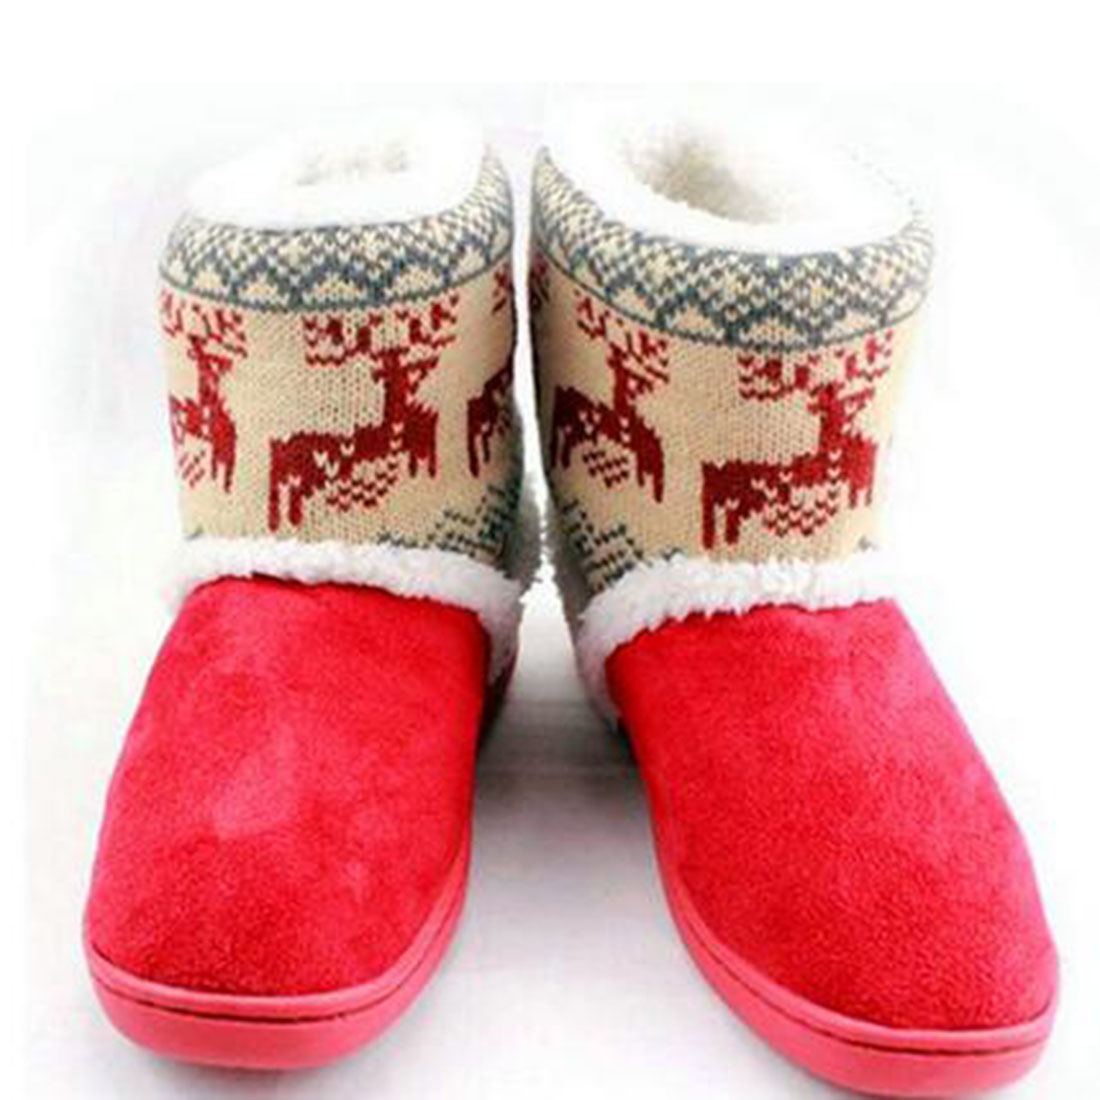 Deer Snow Booties Women Thicken Mid-calf  Winter Elk Warm Women Couple Plush Boots Fur Lined Shoes plus size 36-41 double buckle cross straps mid calf boots